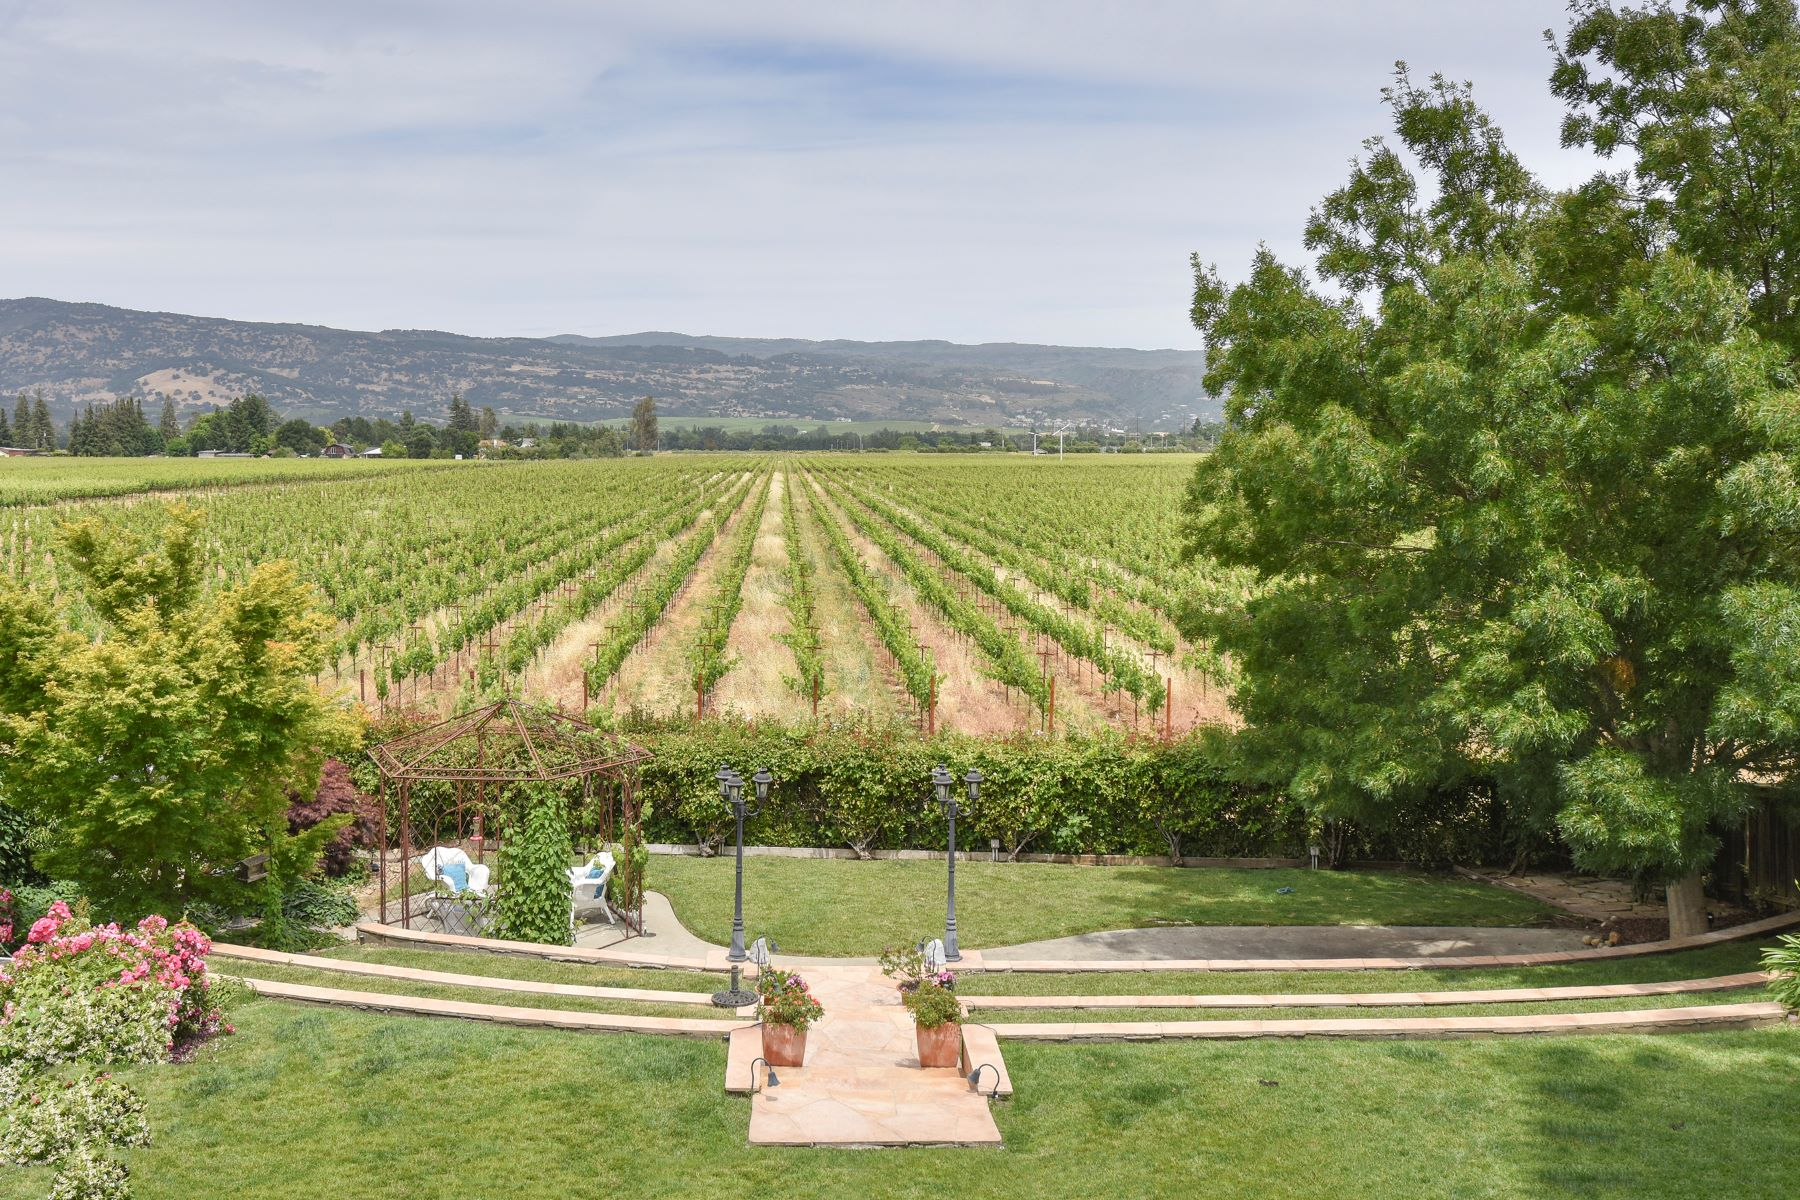 Single Family Home for Sale at Incomparable Vineyard Views and a Spacious Floor Plan 1202 Darling Street Napa, California, 94558 United States